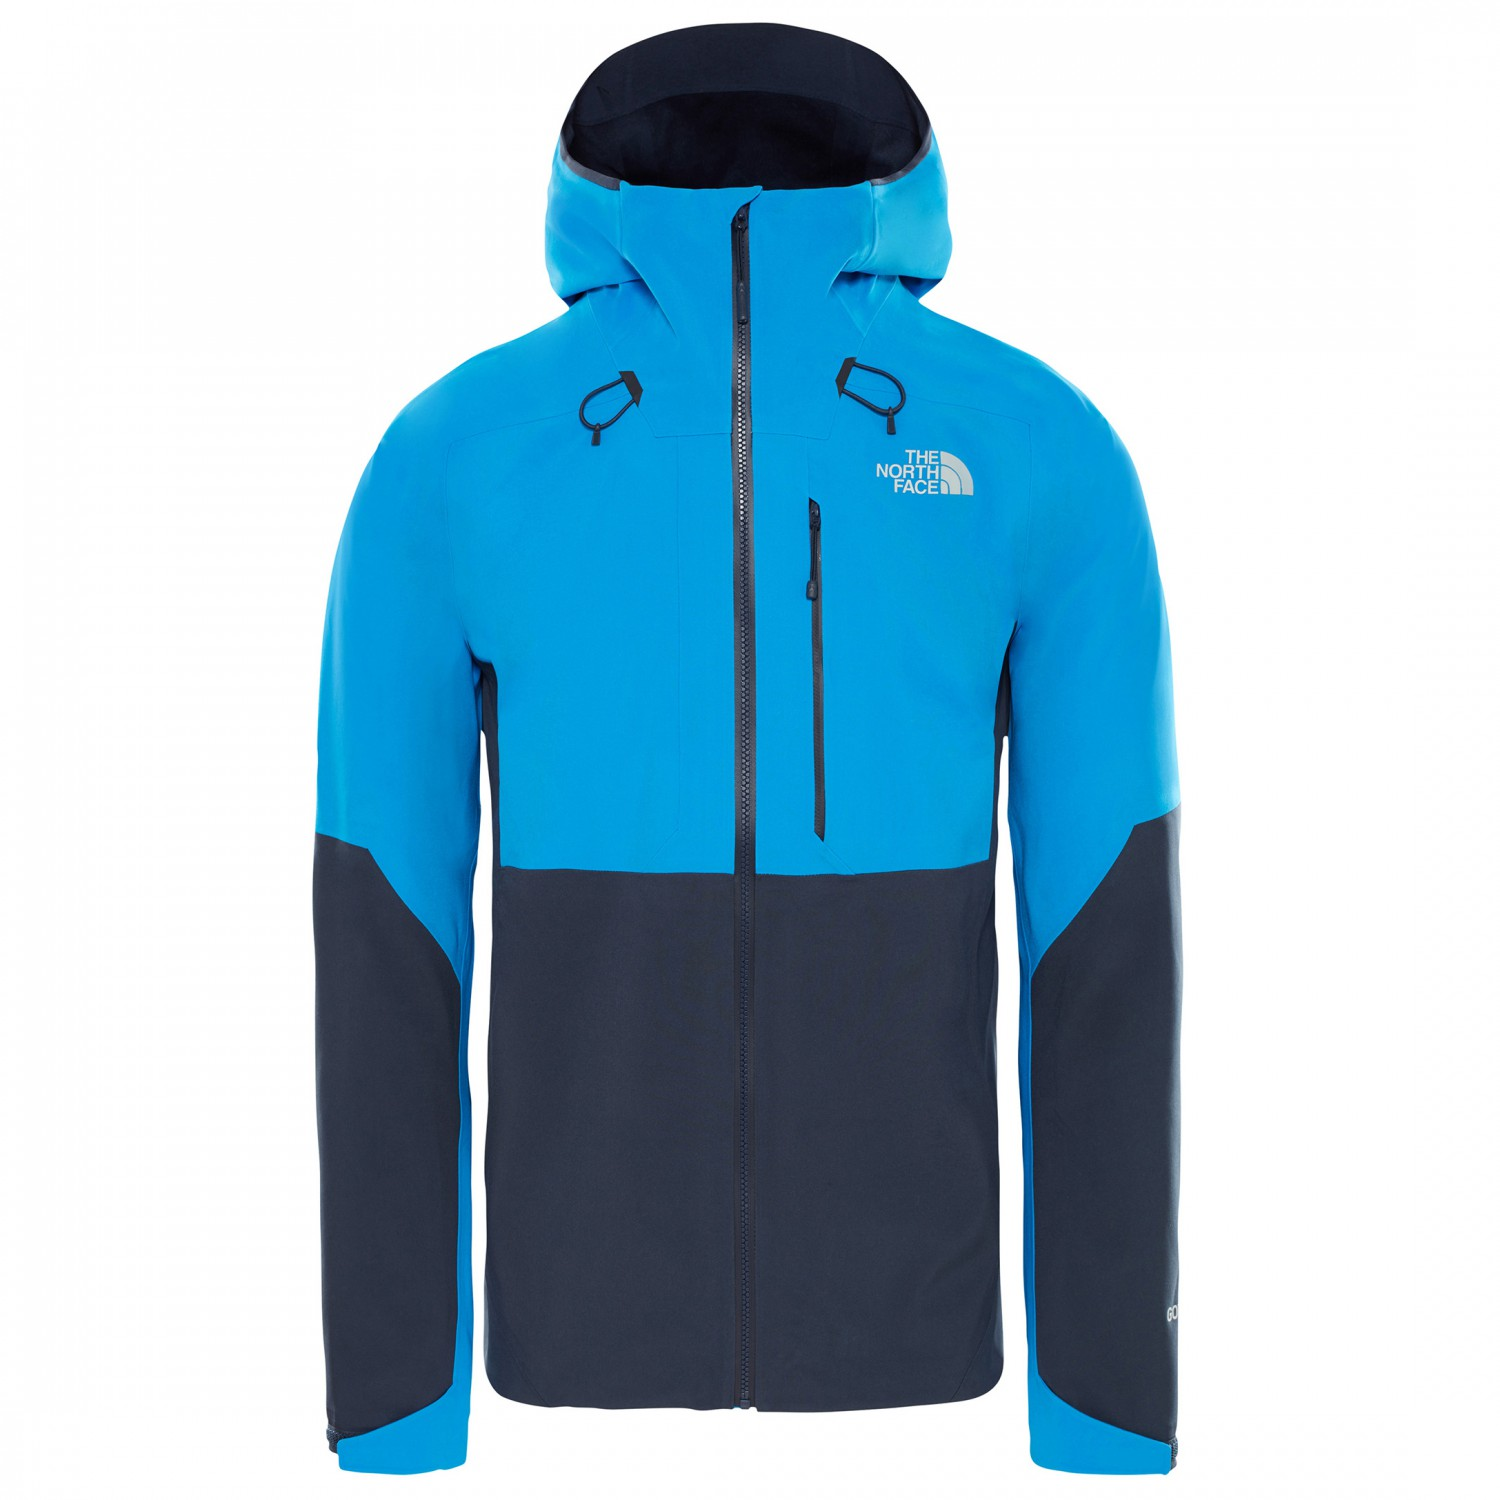 The North Face Apex Flex GTX 2.0 Jacket - Giacca antipioggia Uomo ... 63e7c3a6bc4